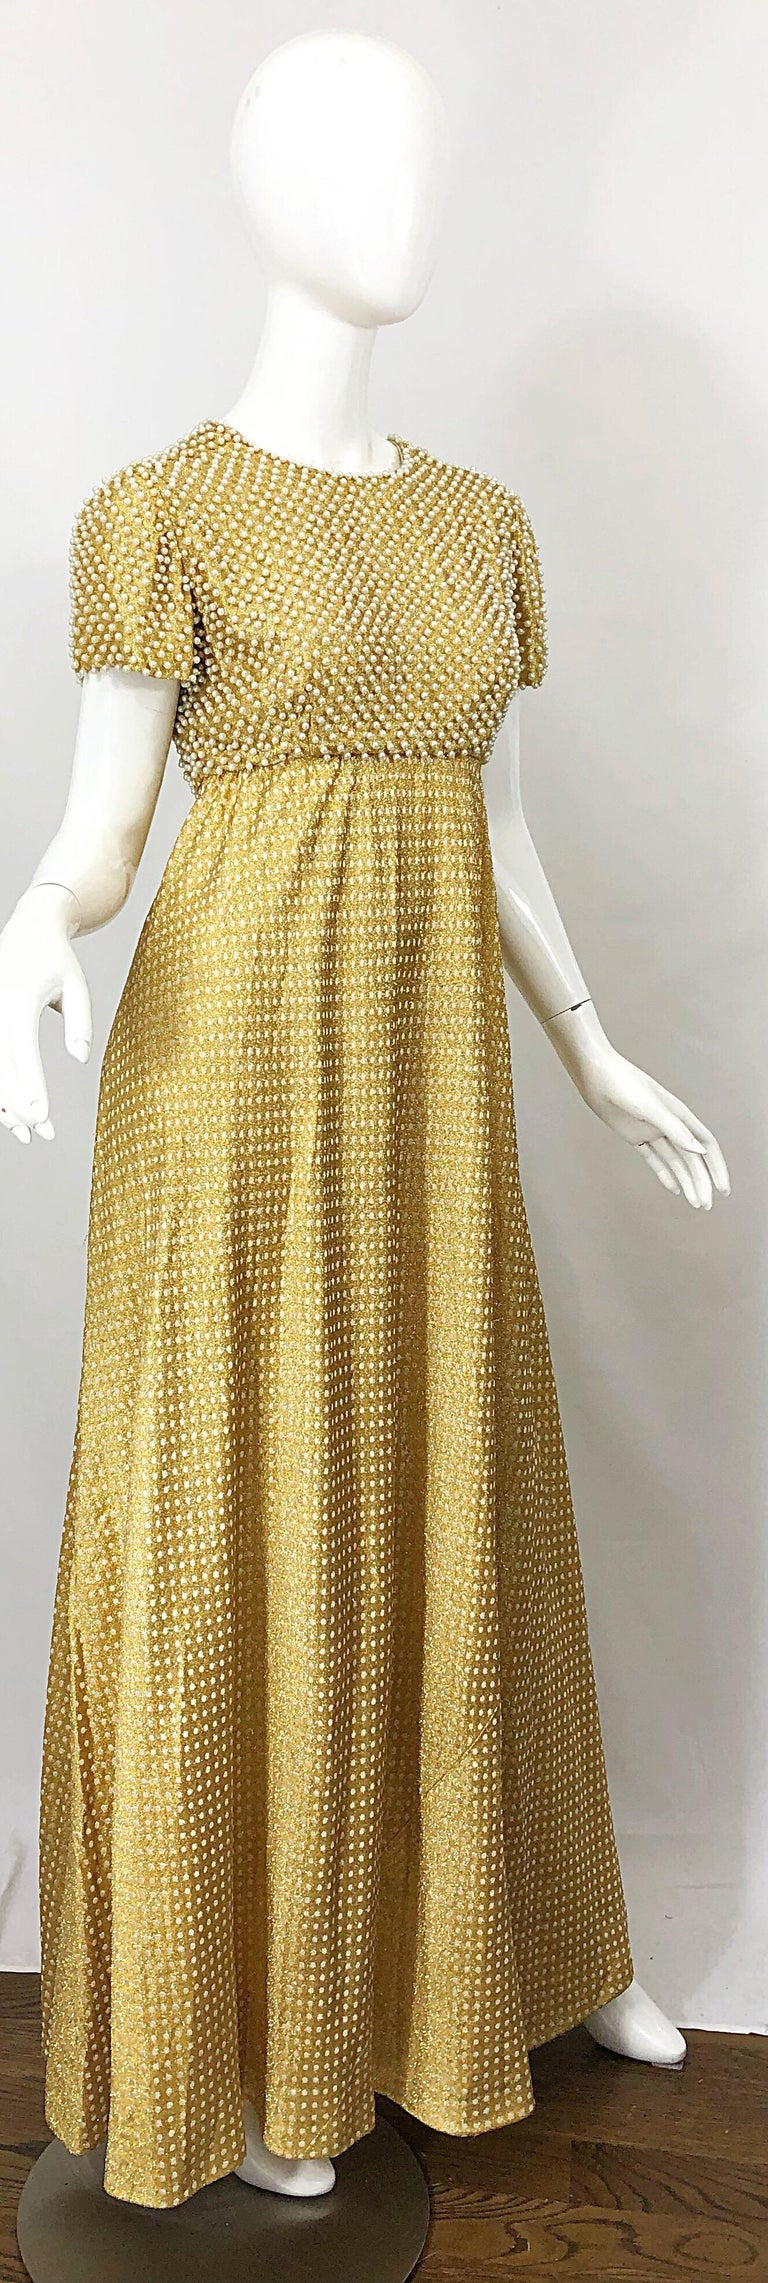 1960s Geoffrey Beene Couture Gold Silk Pearl Encrusted Vintage 60s Gown Dress For Sale 9